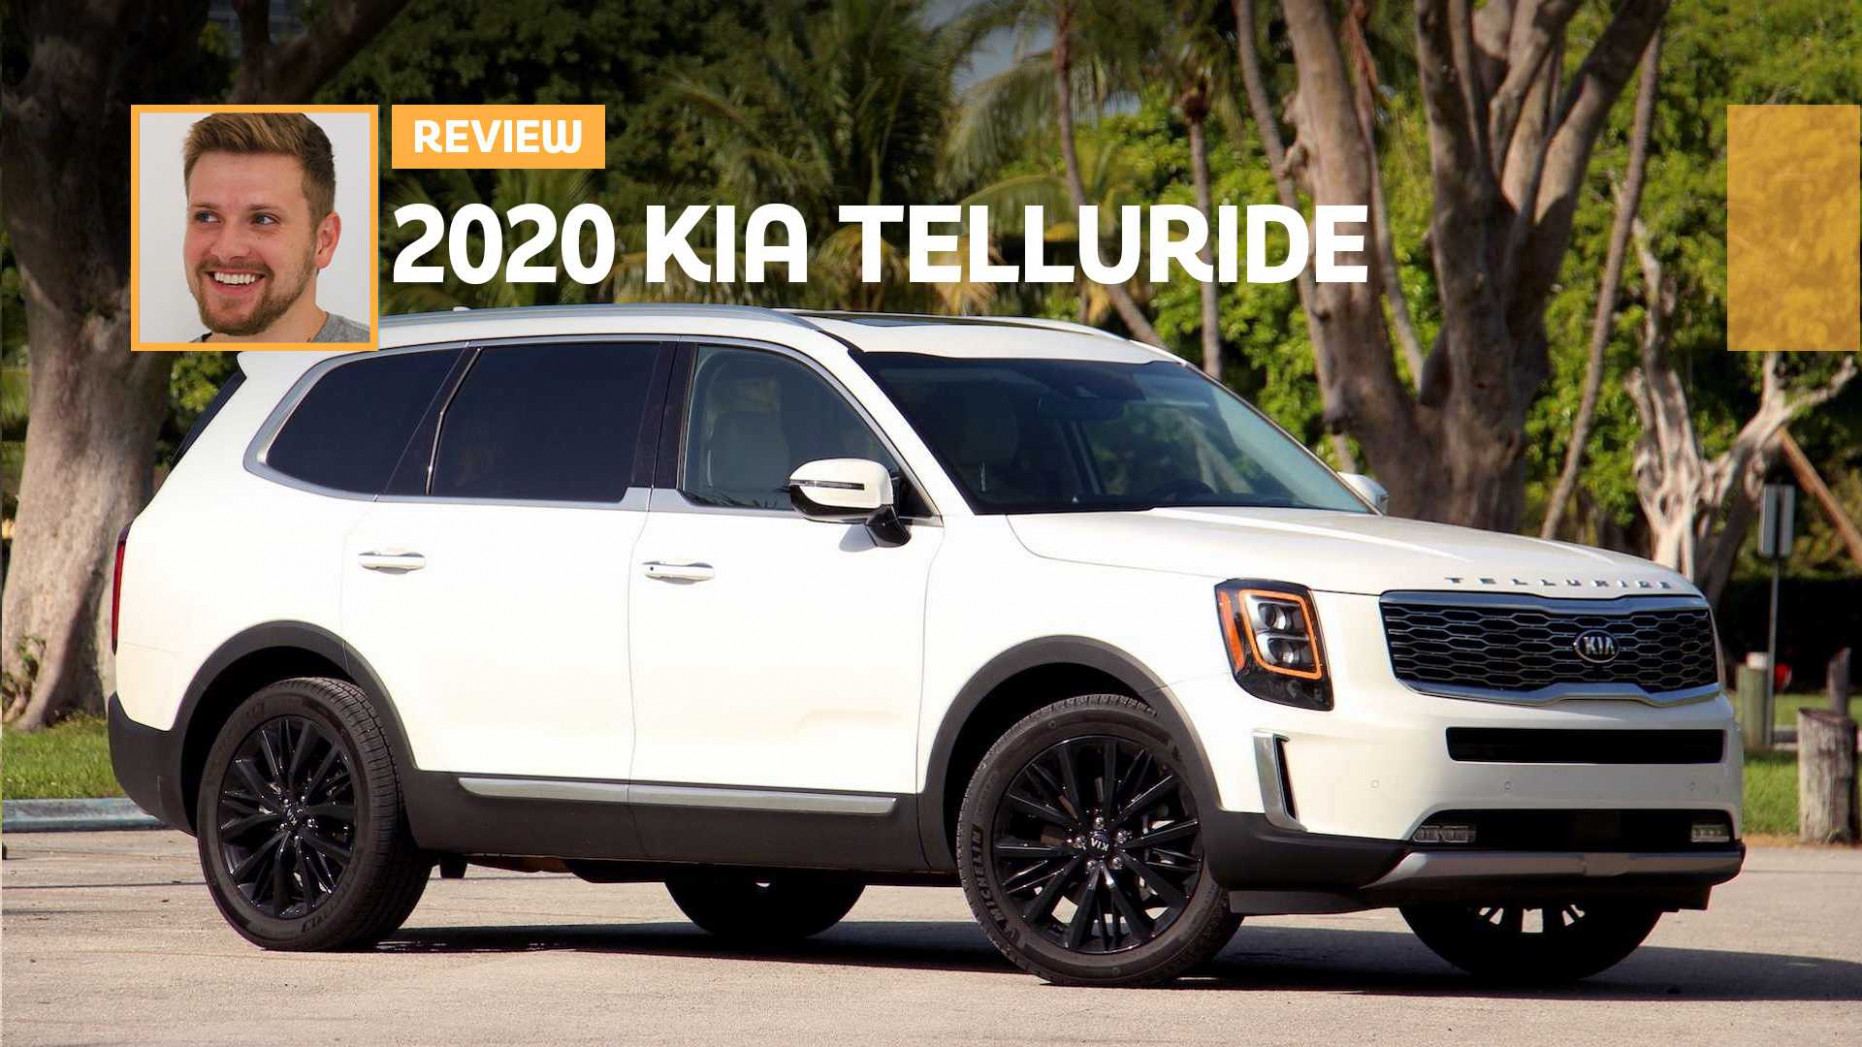 12 Kia Telluride SX Review: Dare To Be Different